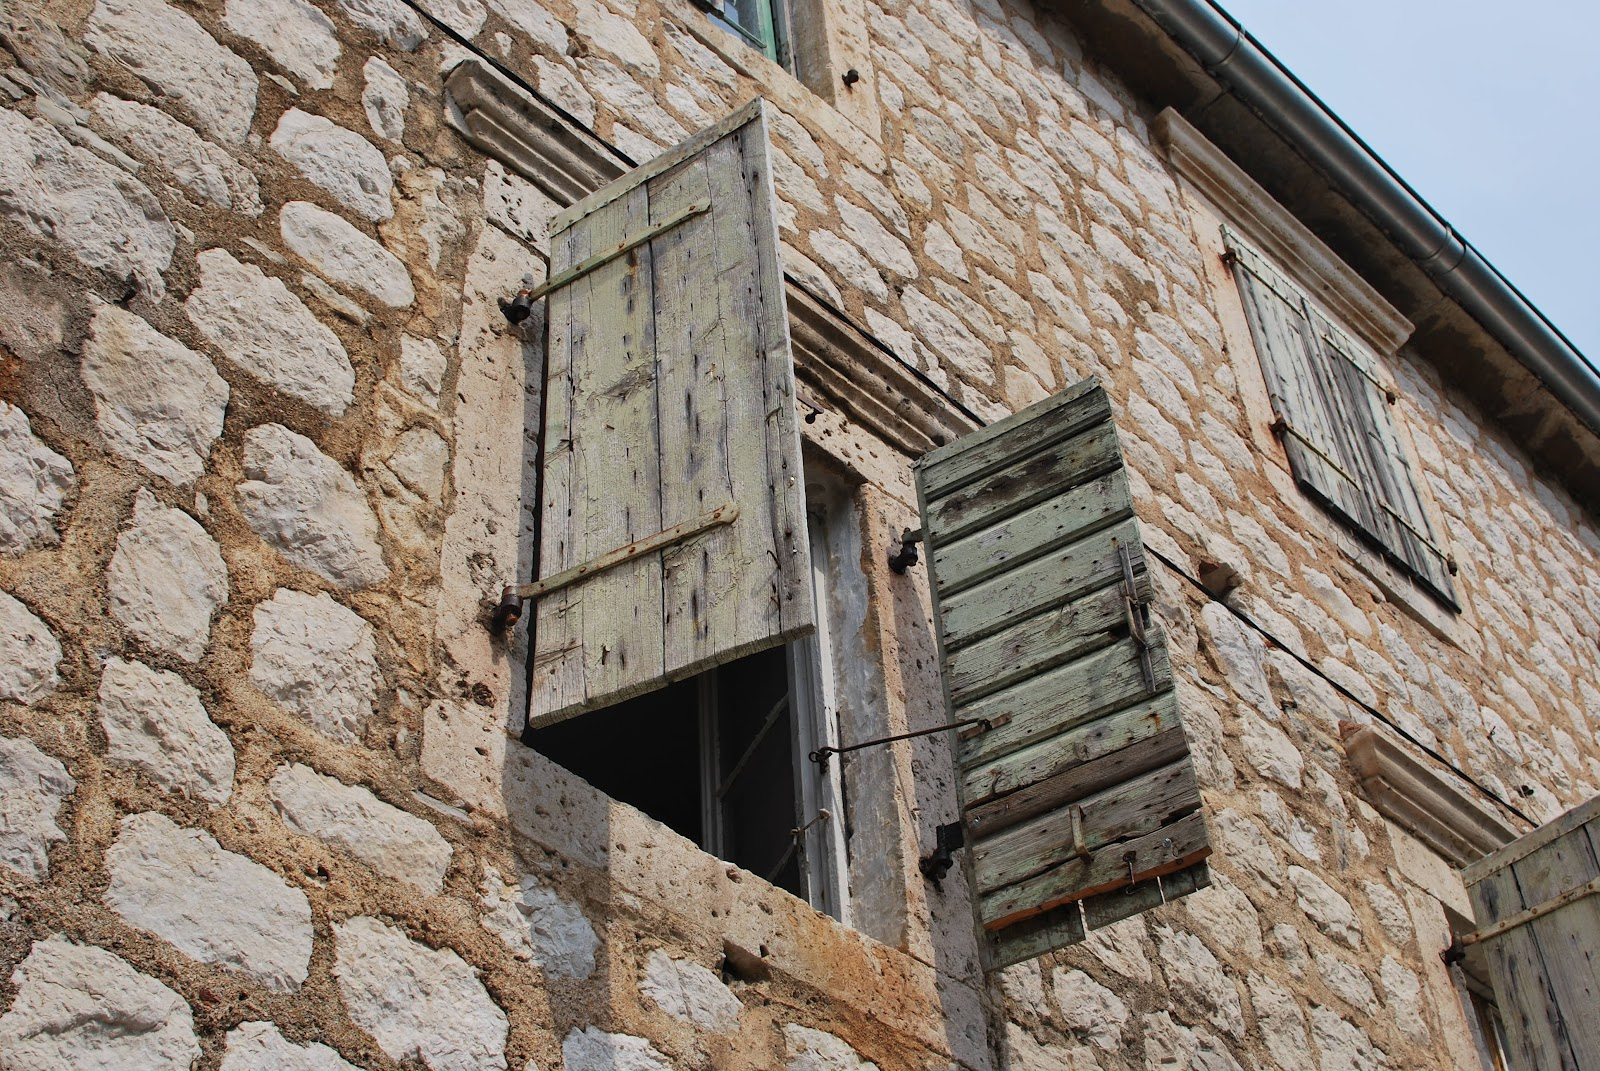 A closer look at the stone architecture and weathered shutters common in this region